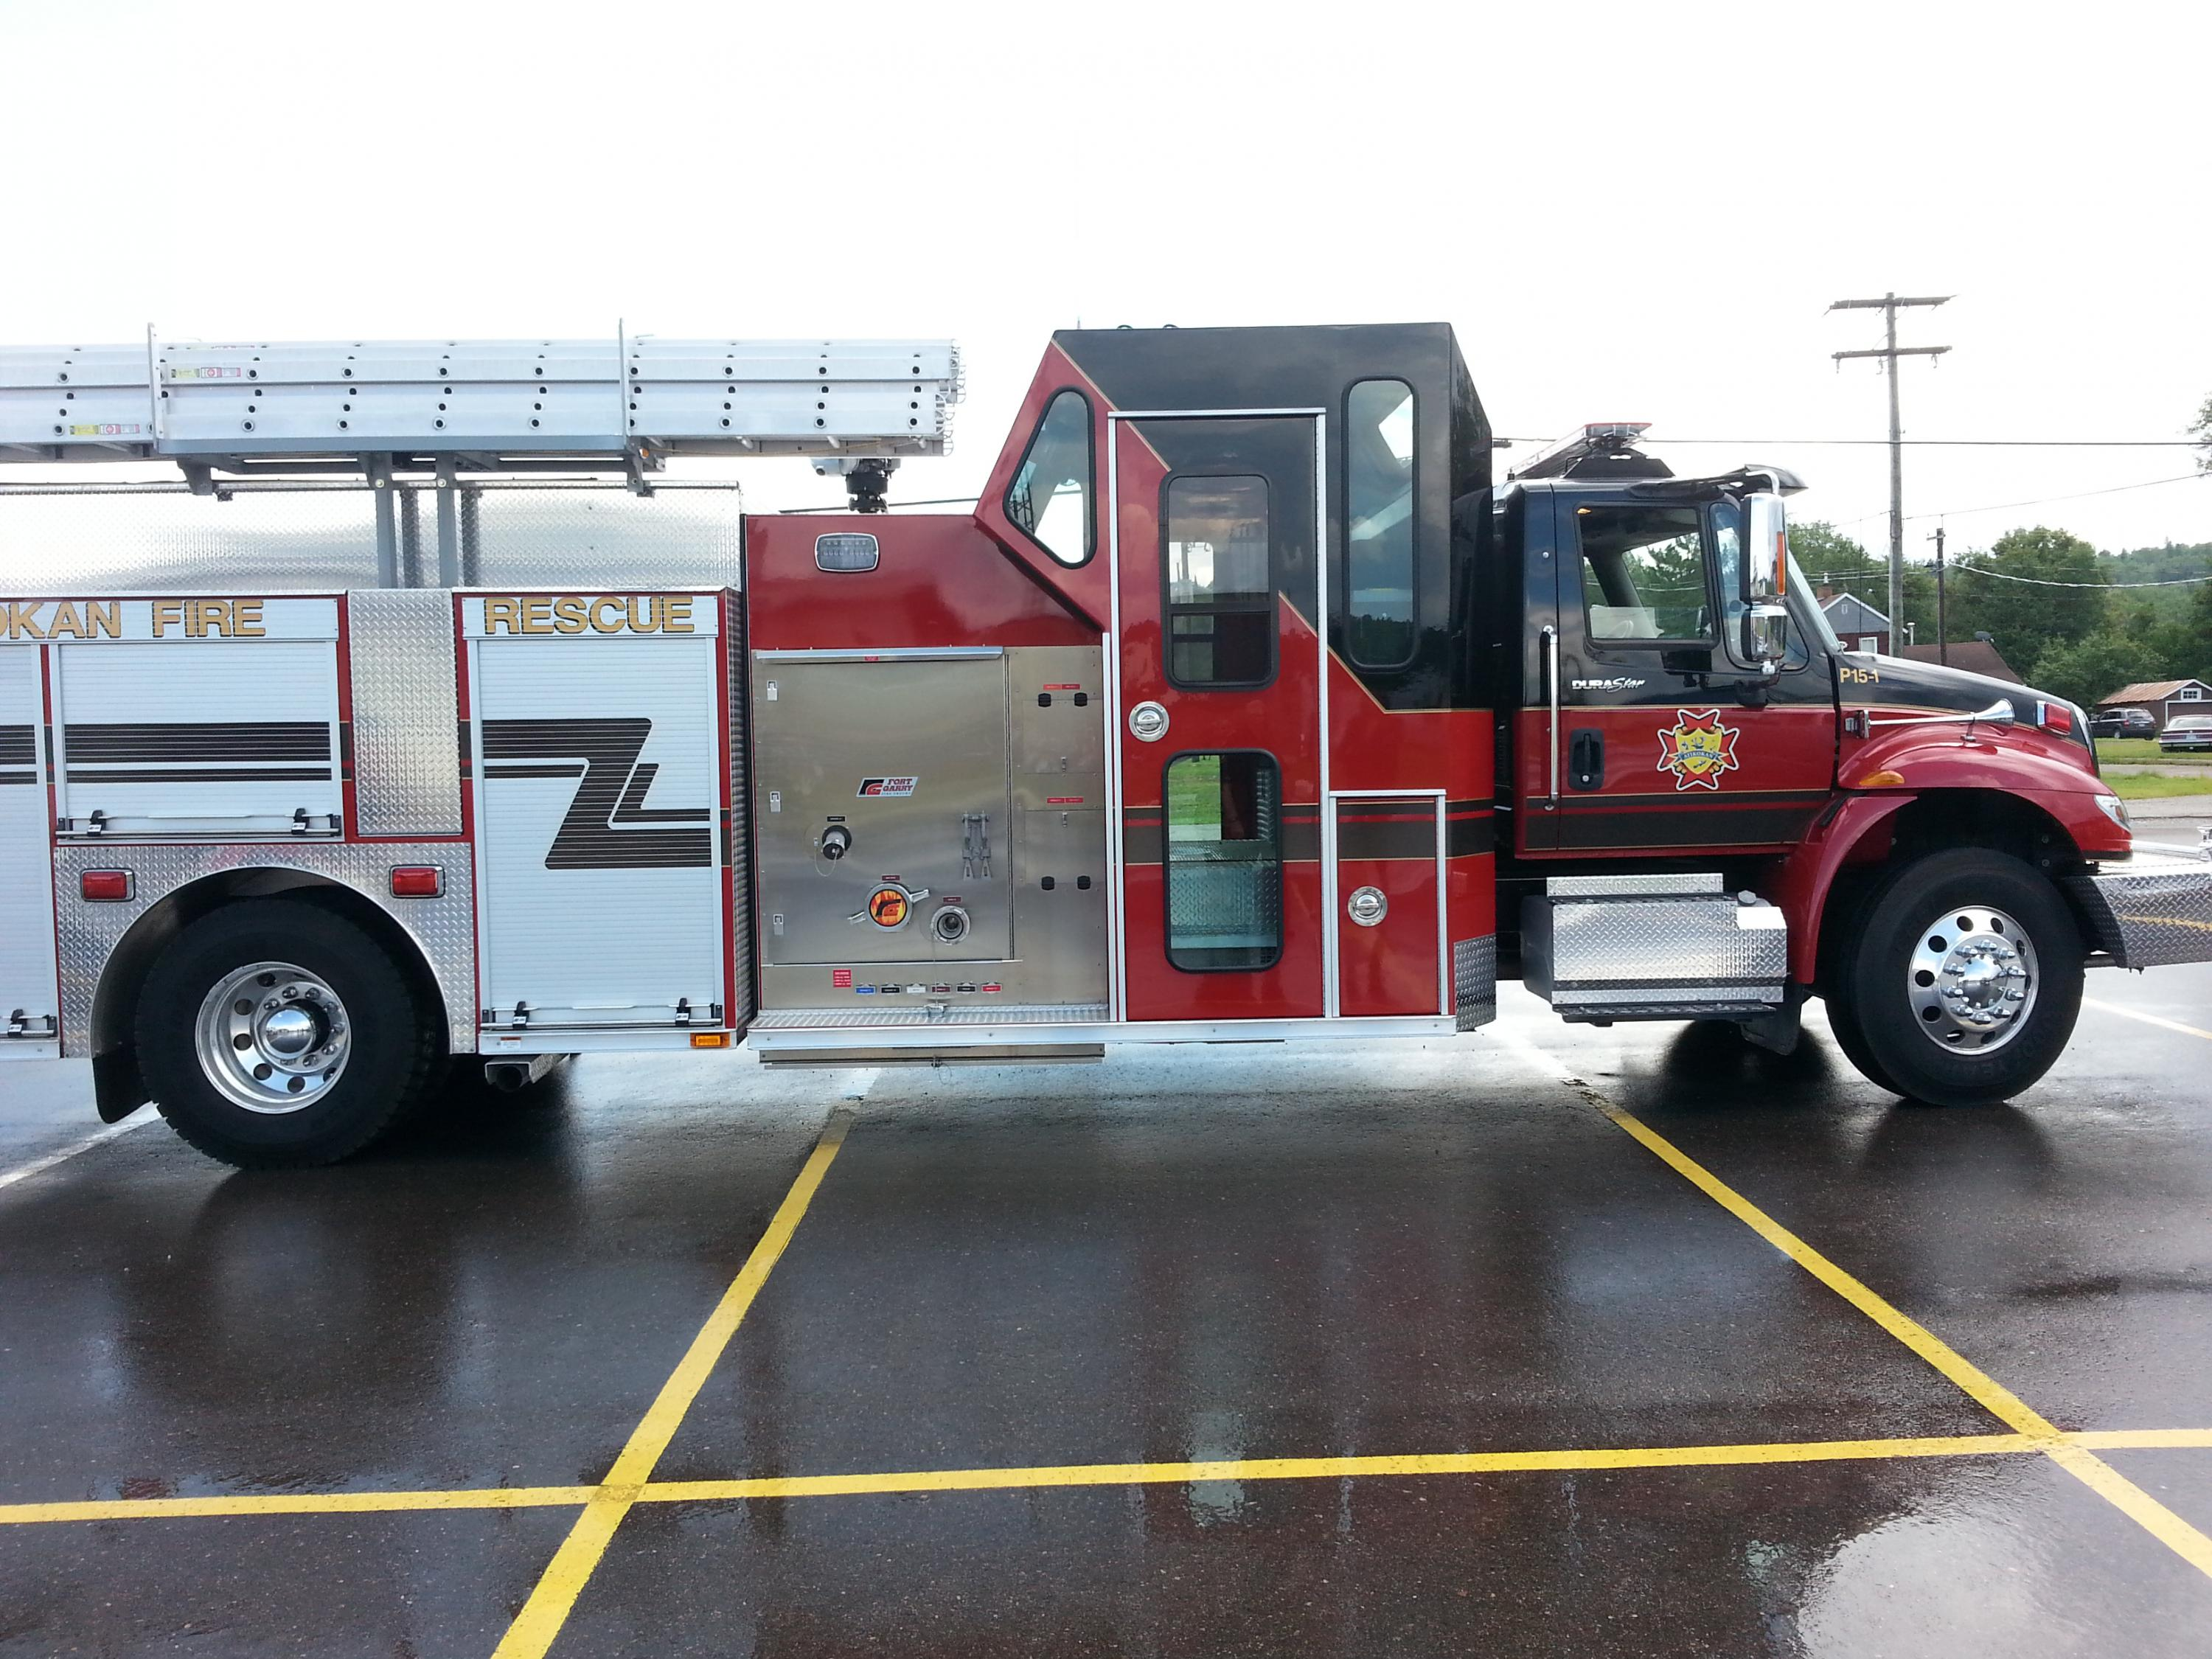 sideview of firetruck